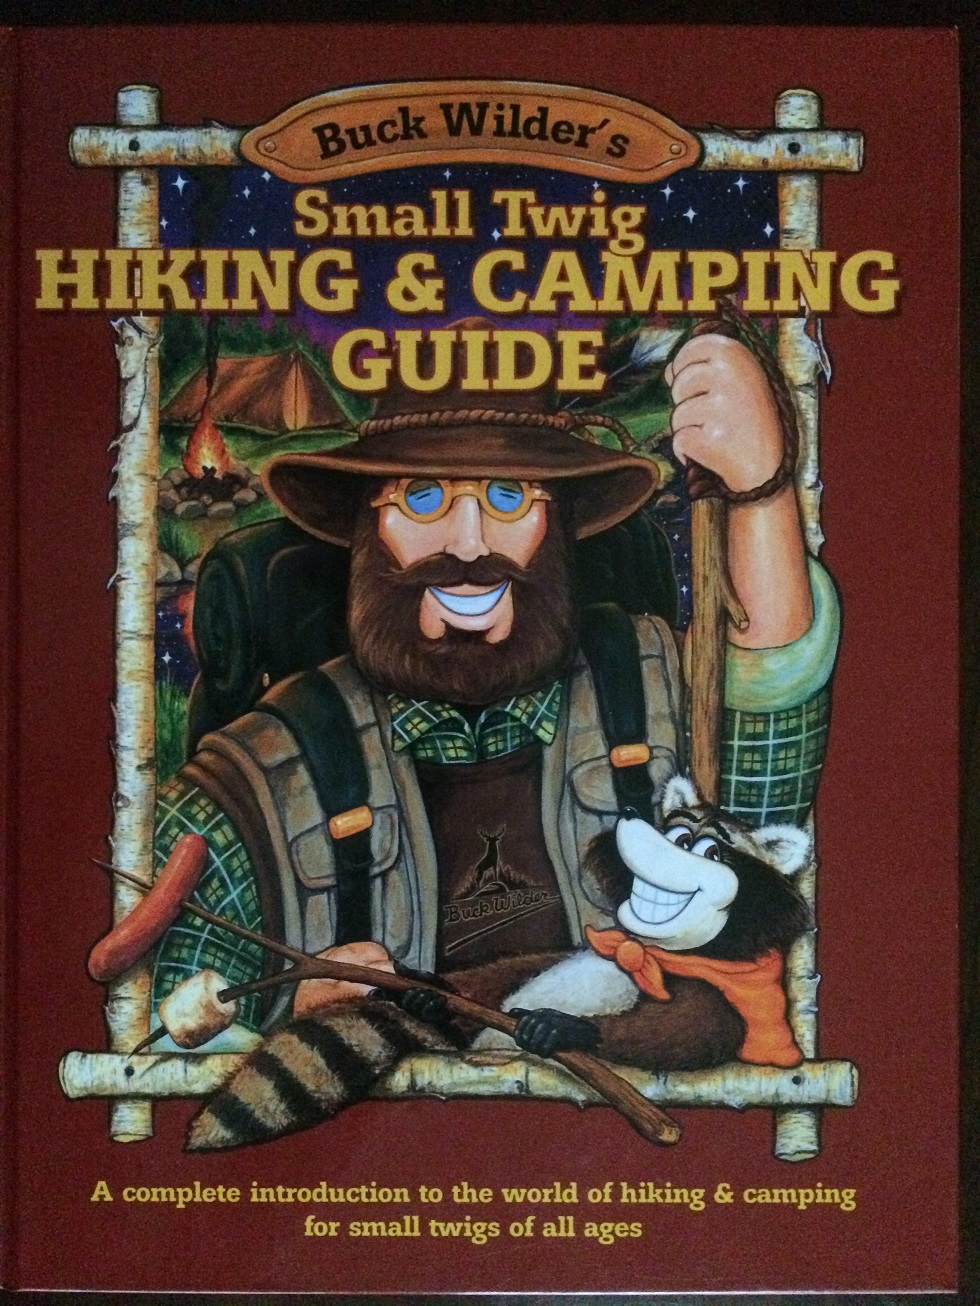 Small Twig Hiking & Camping Guide